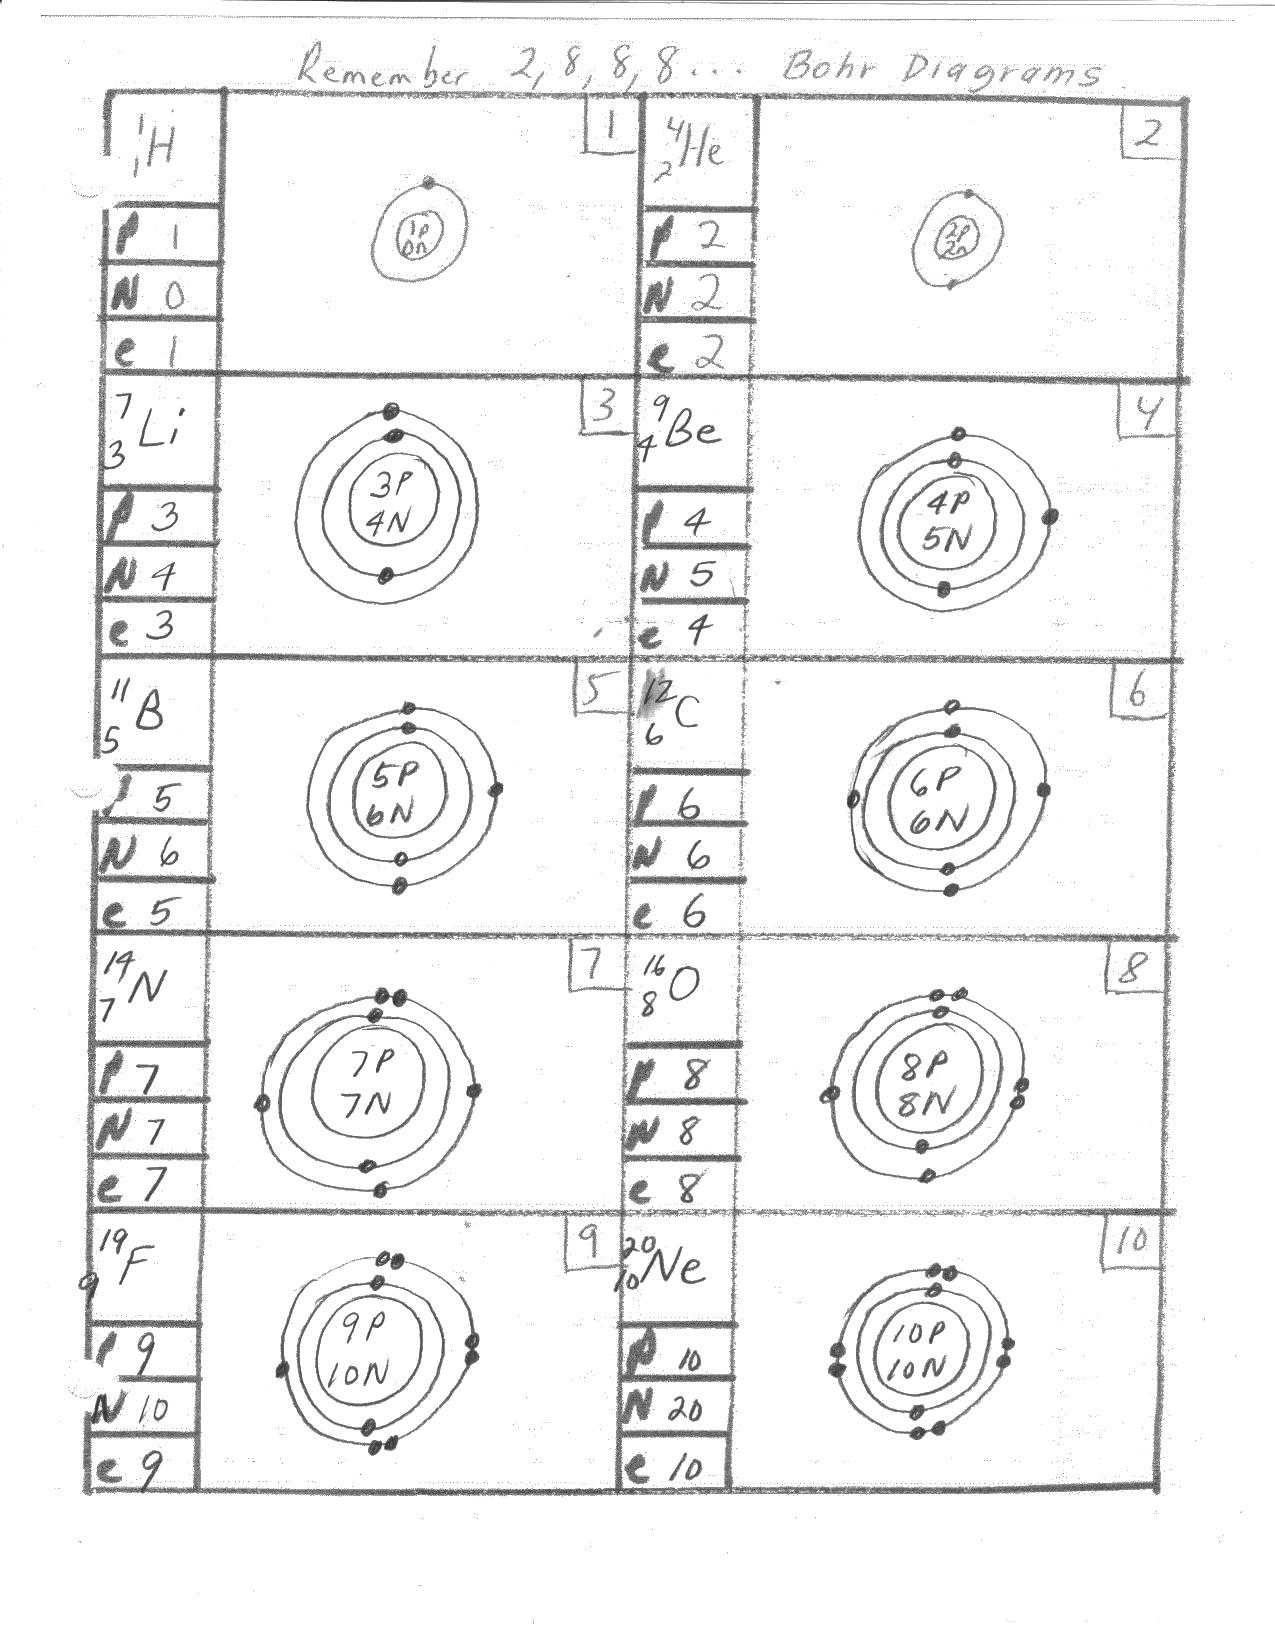 bohr model worksheet answers – Bohr Model Worksheet